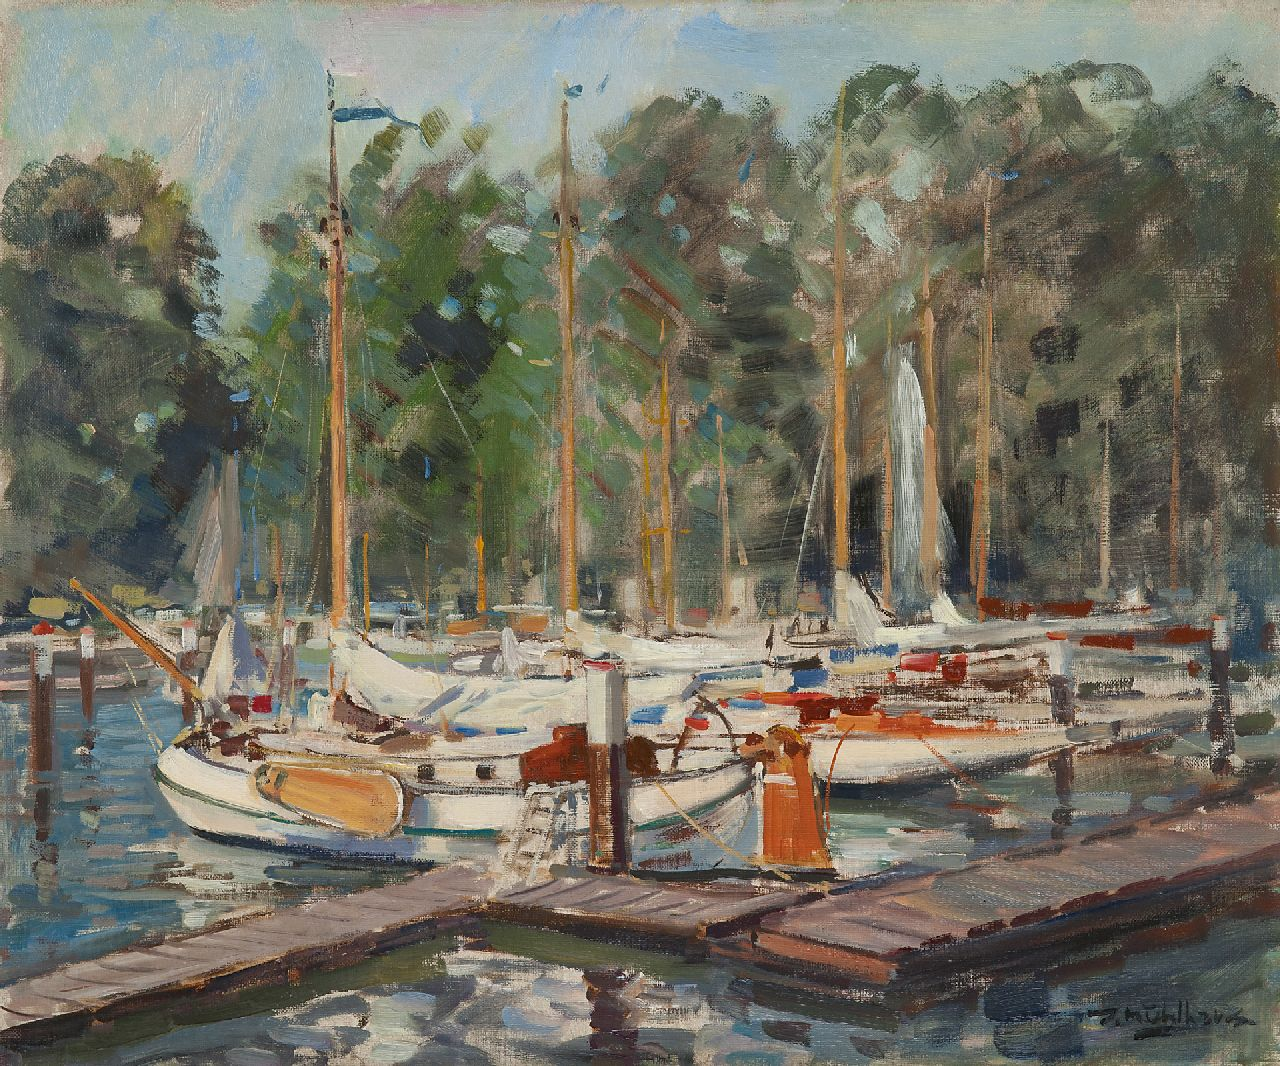 Mühlhaus D.  | Daniël 'Daan' Mühlhaus | Paintings offered for sale | Moored yachts in the harbour of the KDRZV Dordrecht, oil on canvas 50.0 x 60.2 cm, signed l.r.